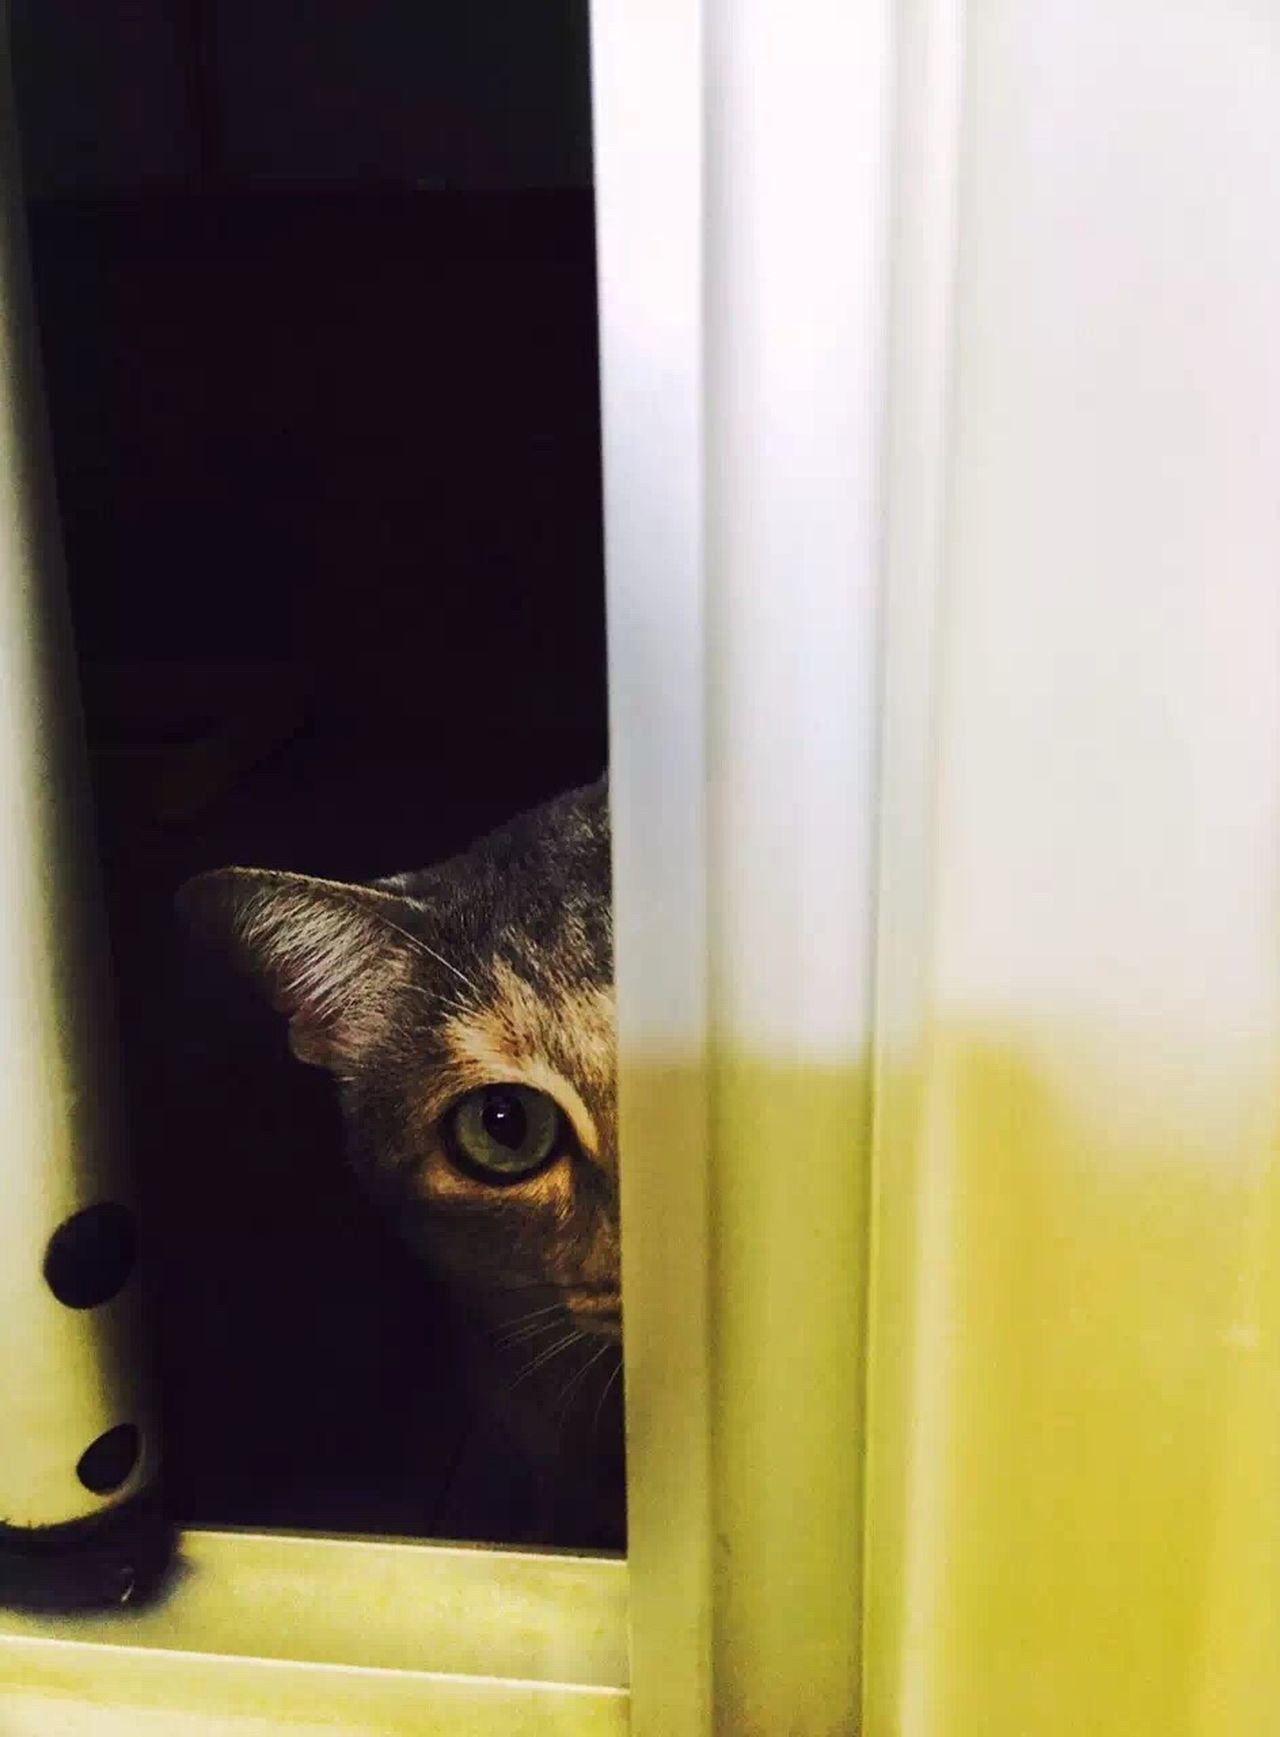 Looking At Camera Pets Peeking Domestic Cat Portrait One Animal Domestic Animals Indoors  Window Curtain Animal Eye Animal Themes Watching No People Feline Mammal Close-up Cage Security Bar Day Hiddi G Eye EyeEmNewHere Uniqueness